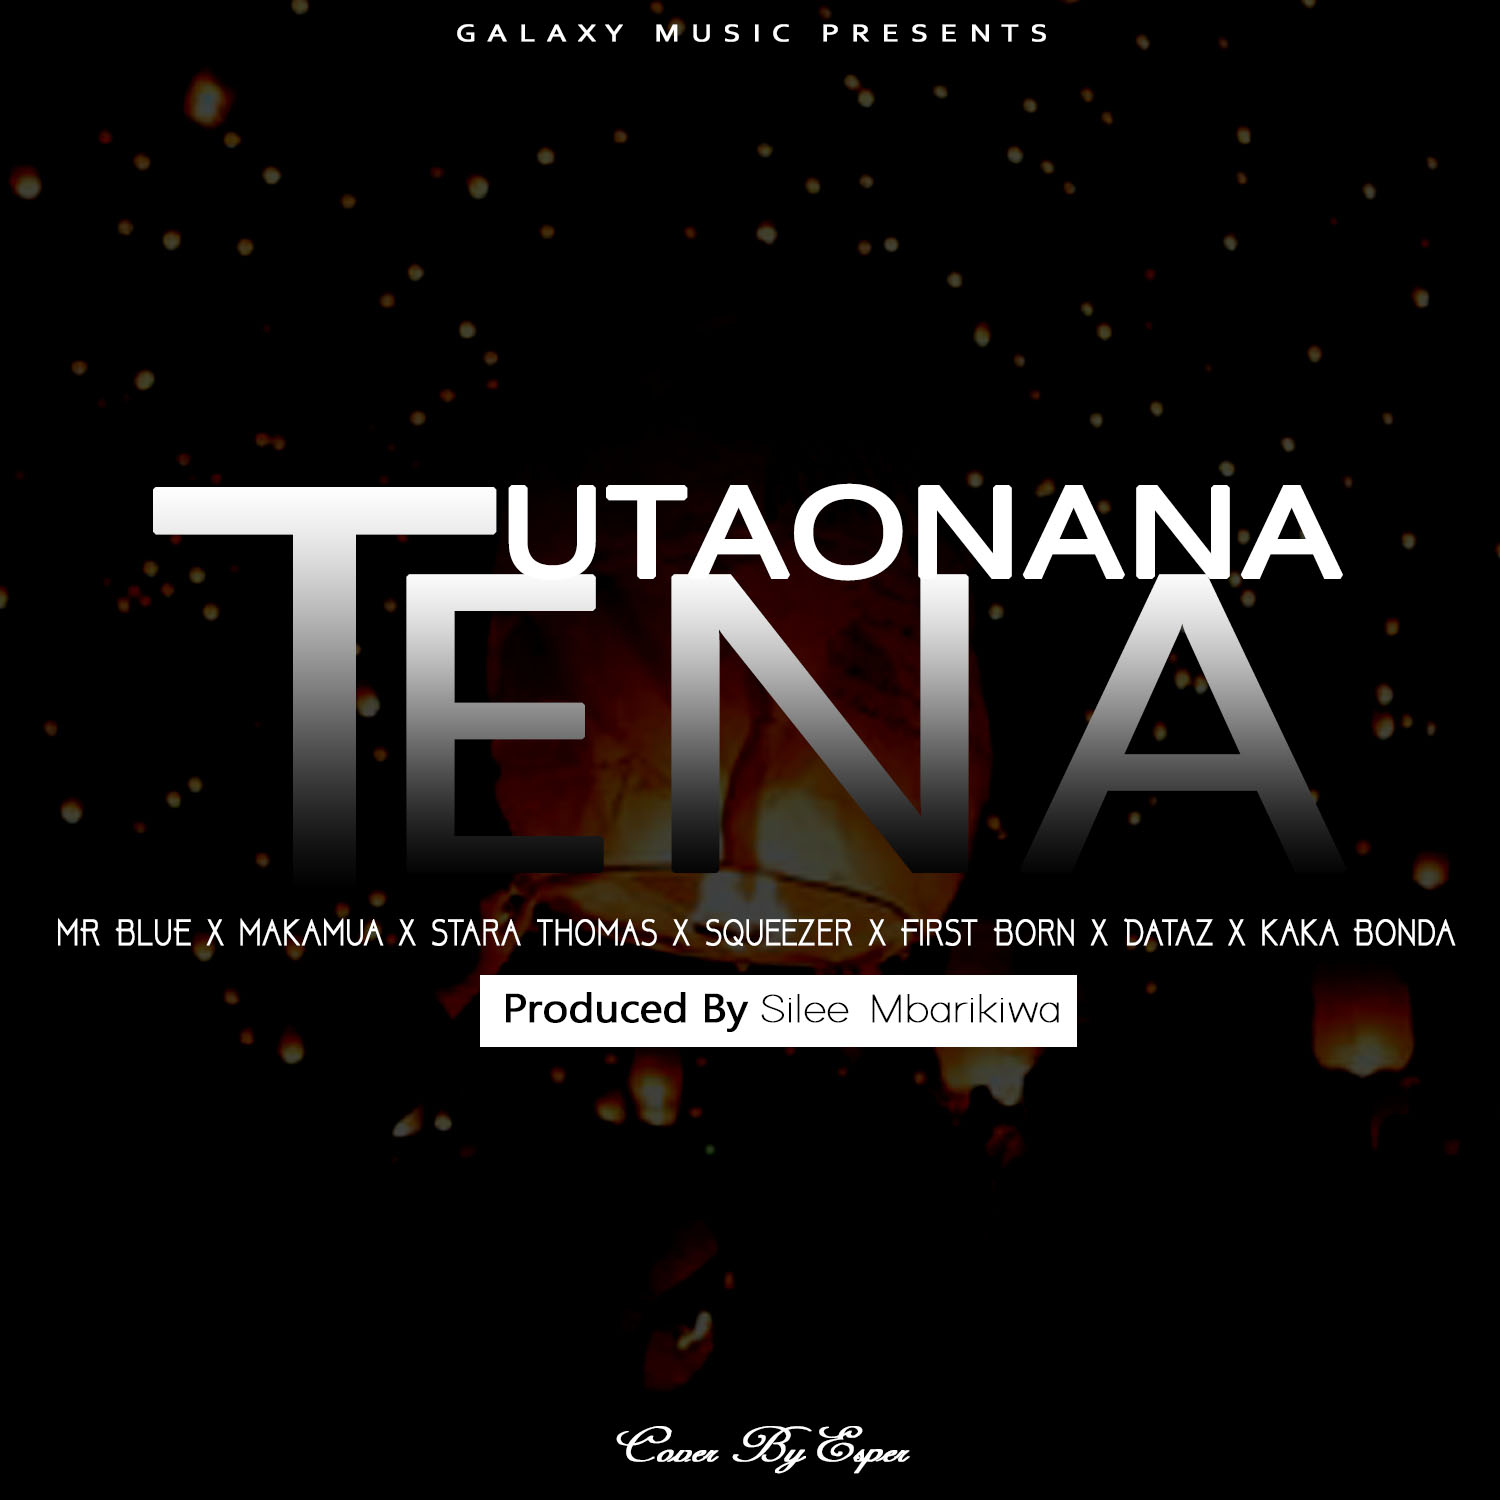 Photo of New AUDIO: Makamua x staraThomas x squeezer x first born x dataz x blue x kaka bonda – Tutaonana tena | DOWNLOAD